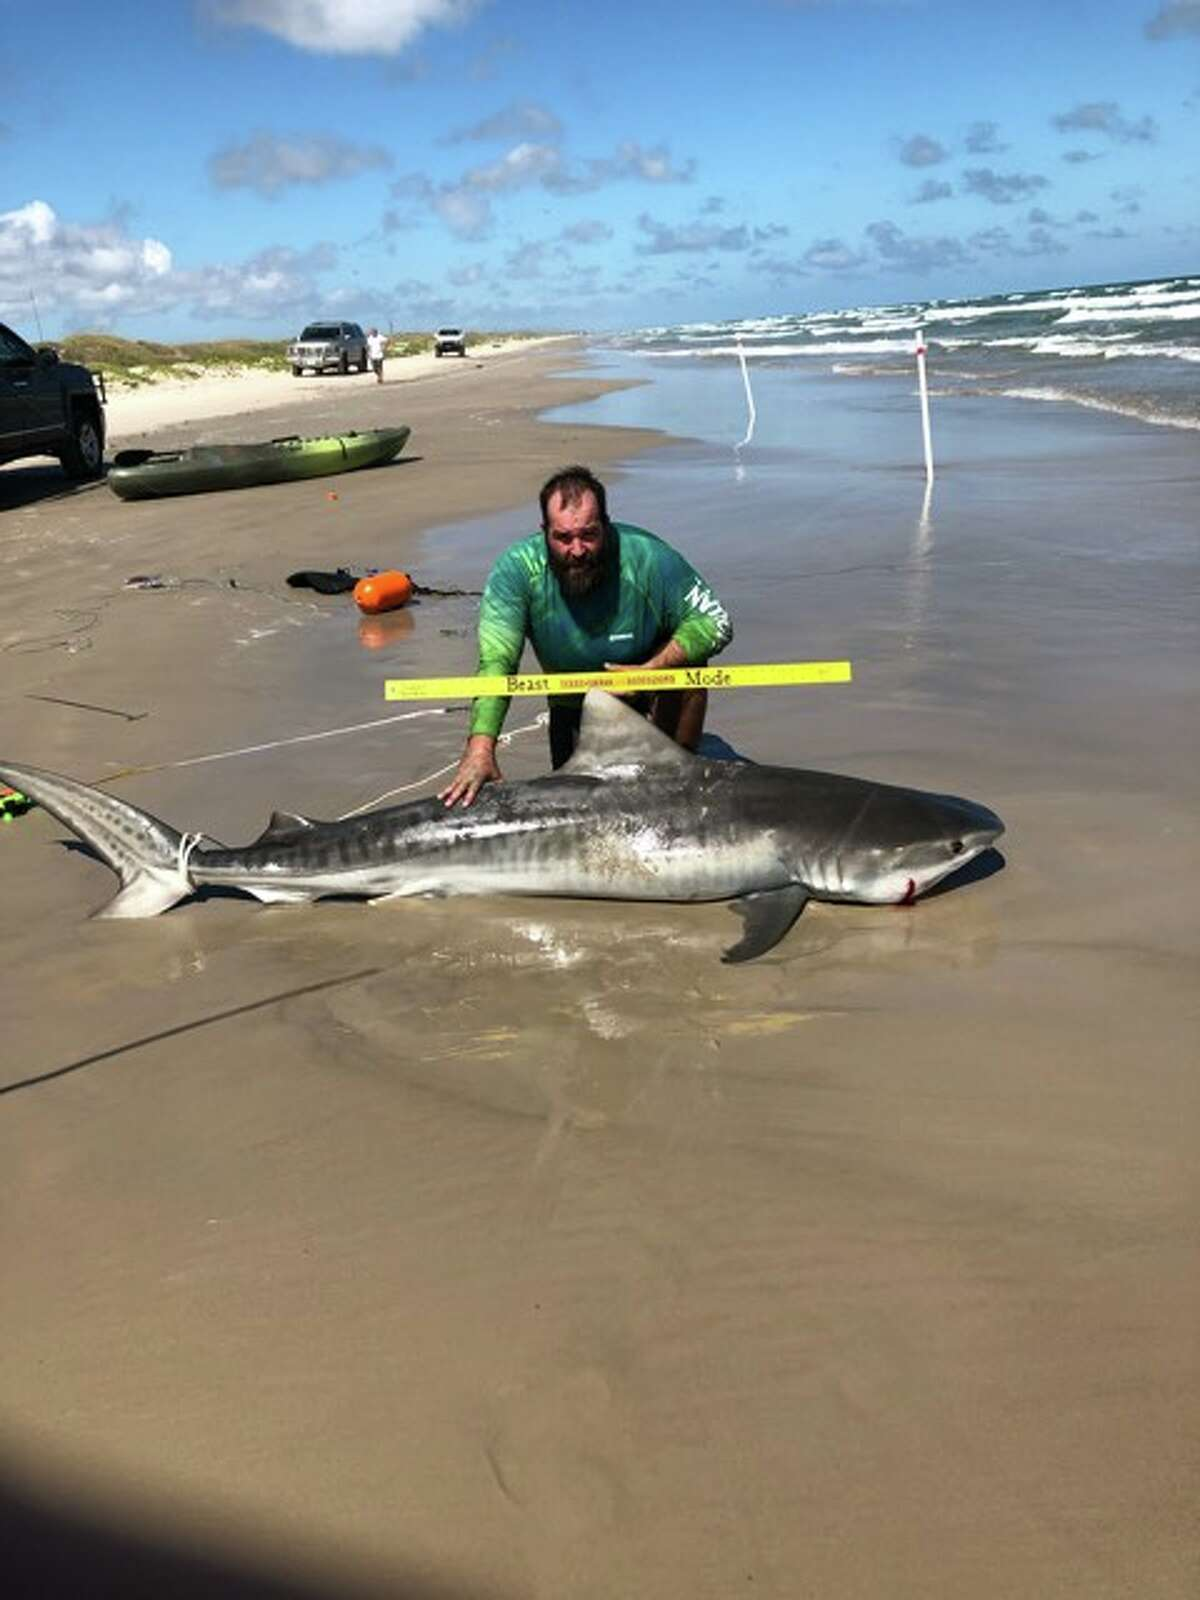 A Texas man is celebrating his personal best after he caught an 8-foot-9-inch tiger shark in Corpus Christi last weekend.